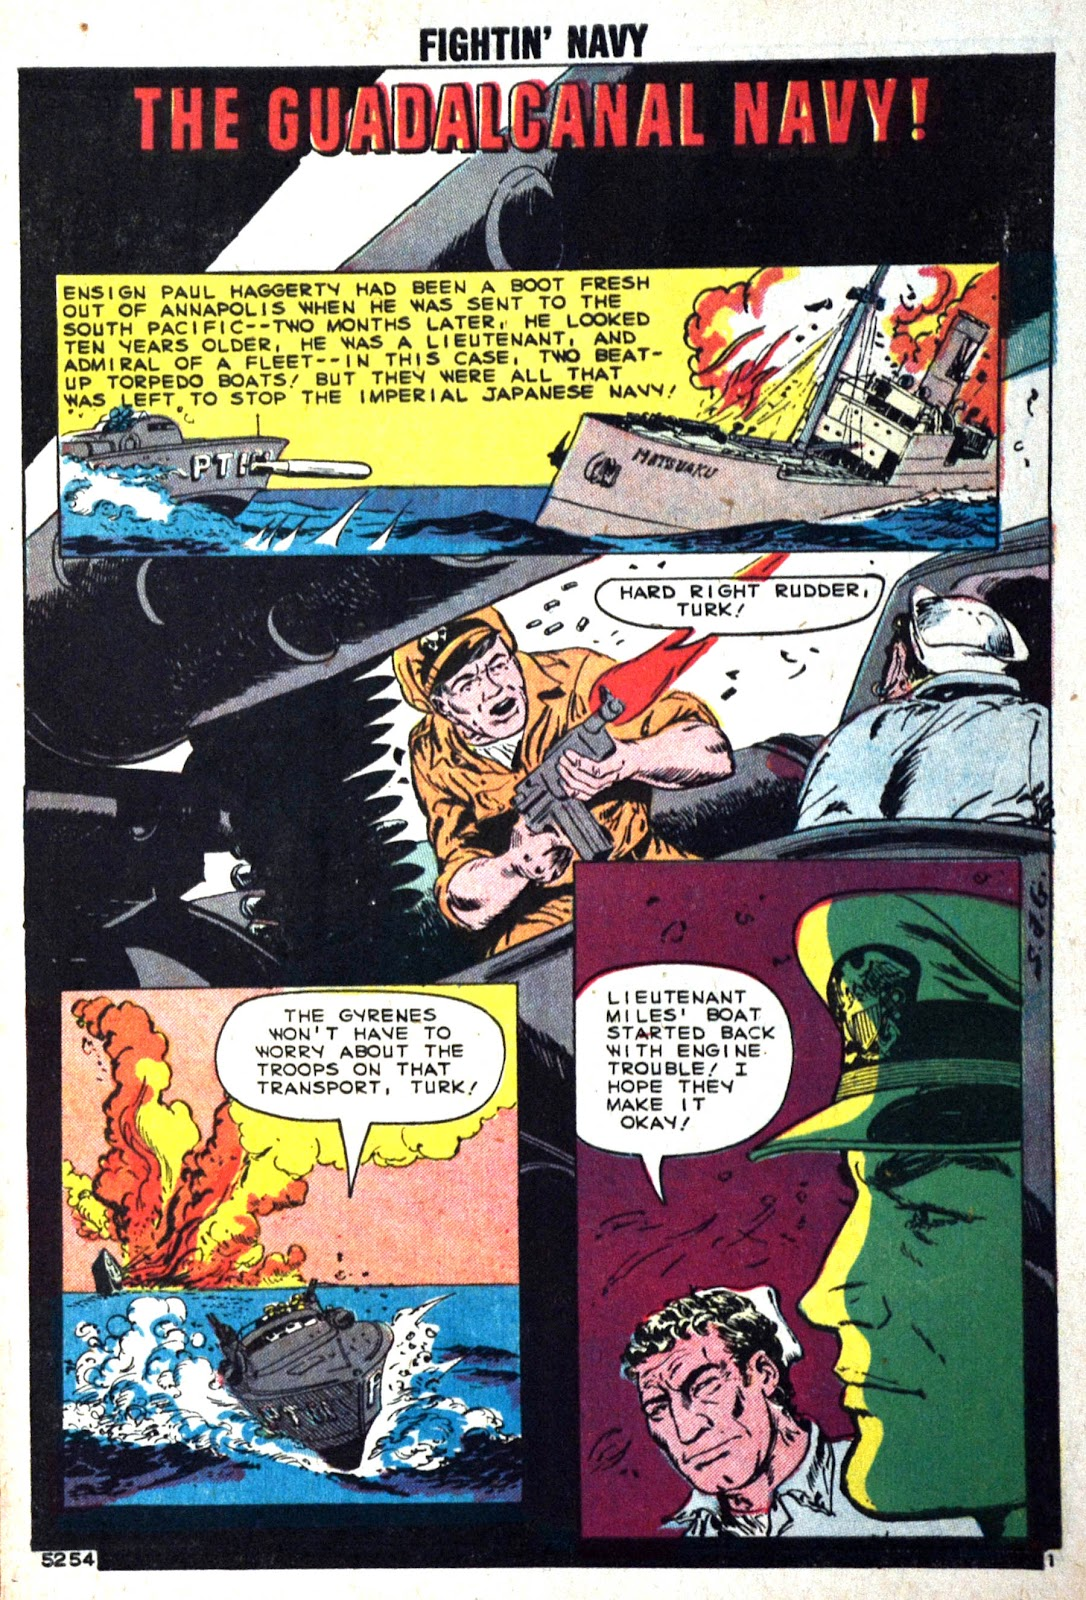 Read online Fightin' Navy comic -  Issue #89 - 3